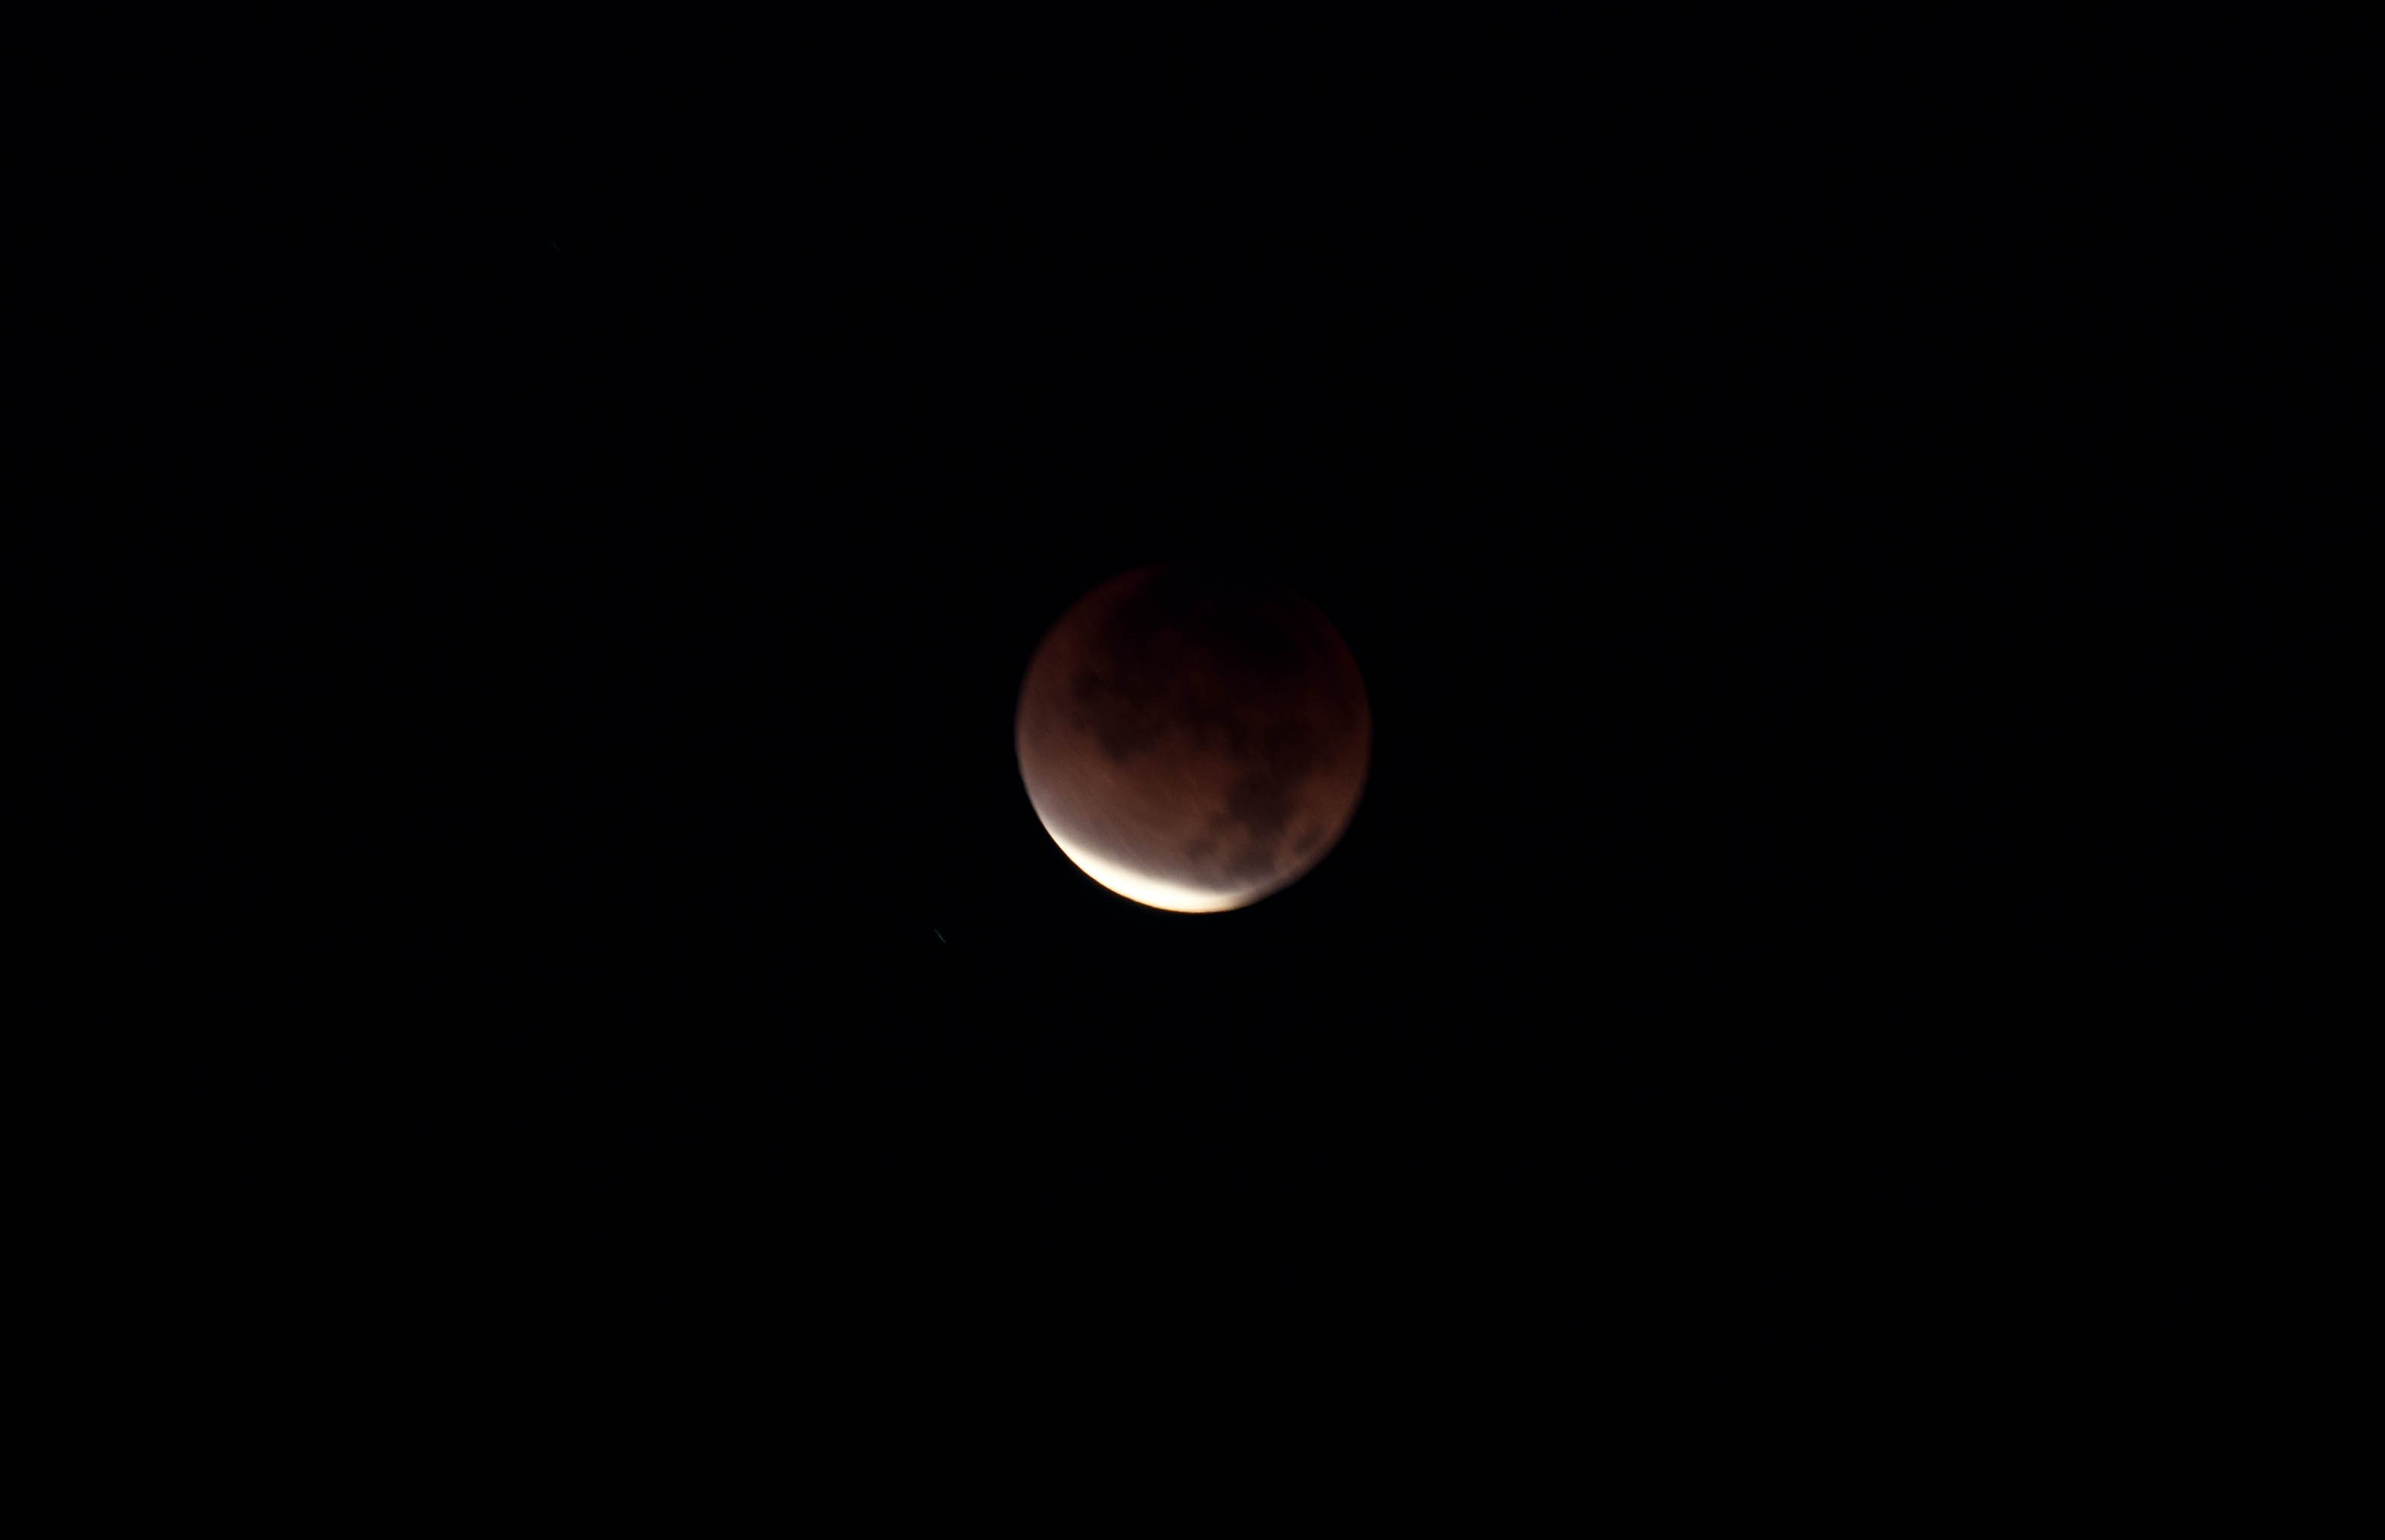 """Photo submission by KFMB viewer, Jen. """"Breaking Dawn of Red Lunar Eclpise"""""""